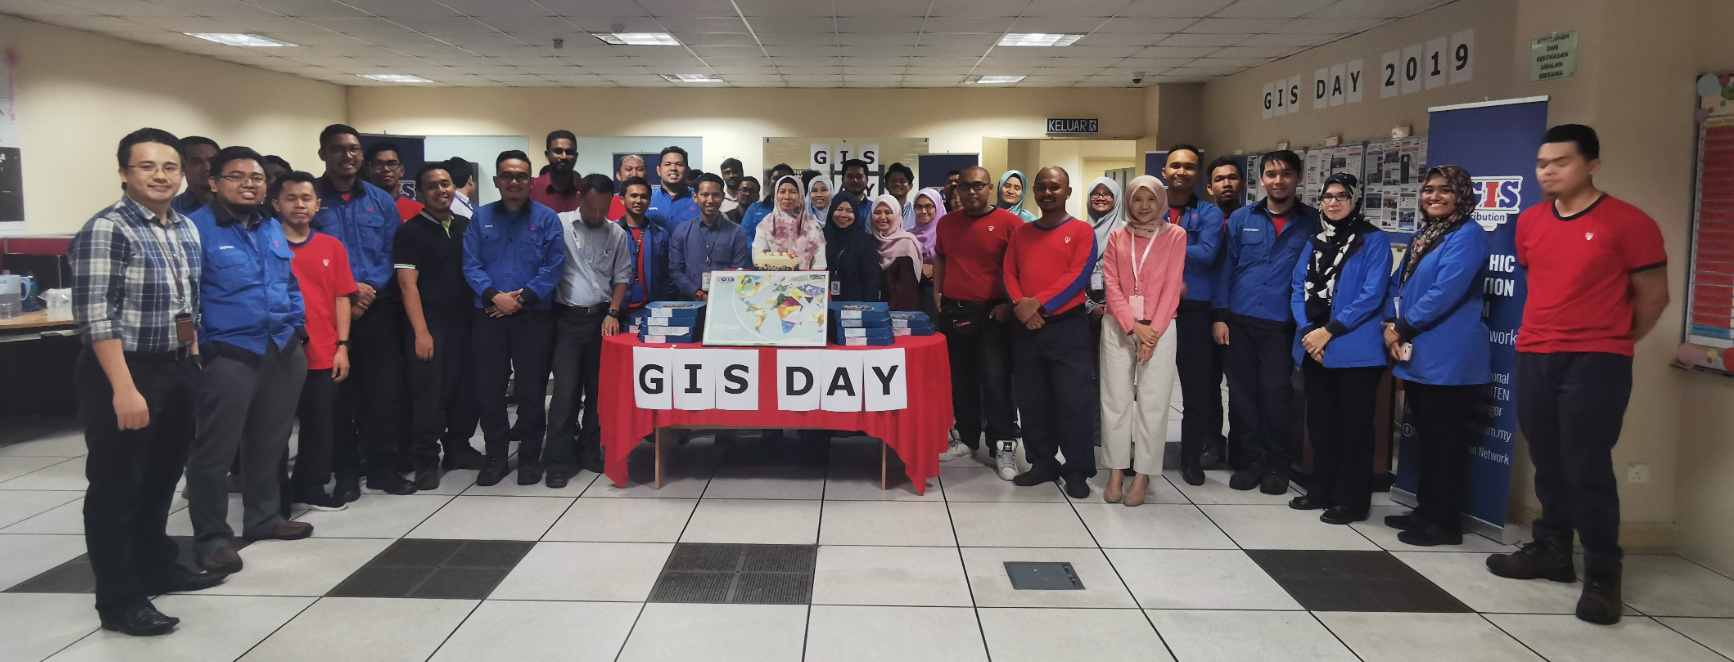 GIS Day celebration in Malaysia.